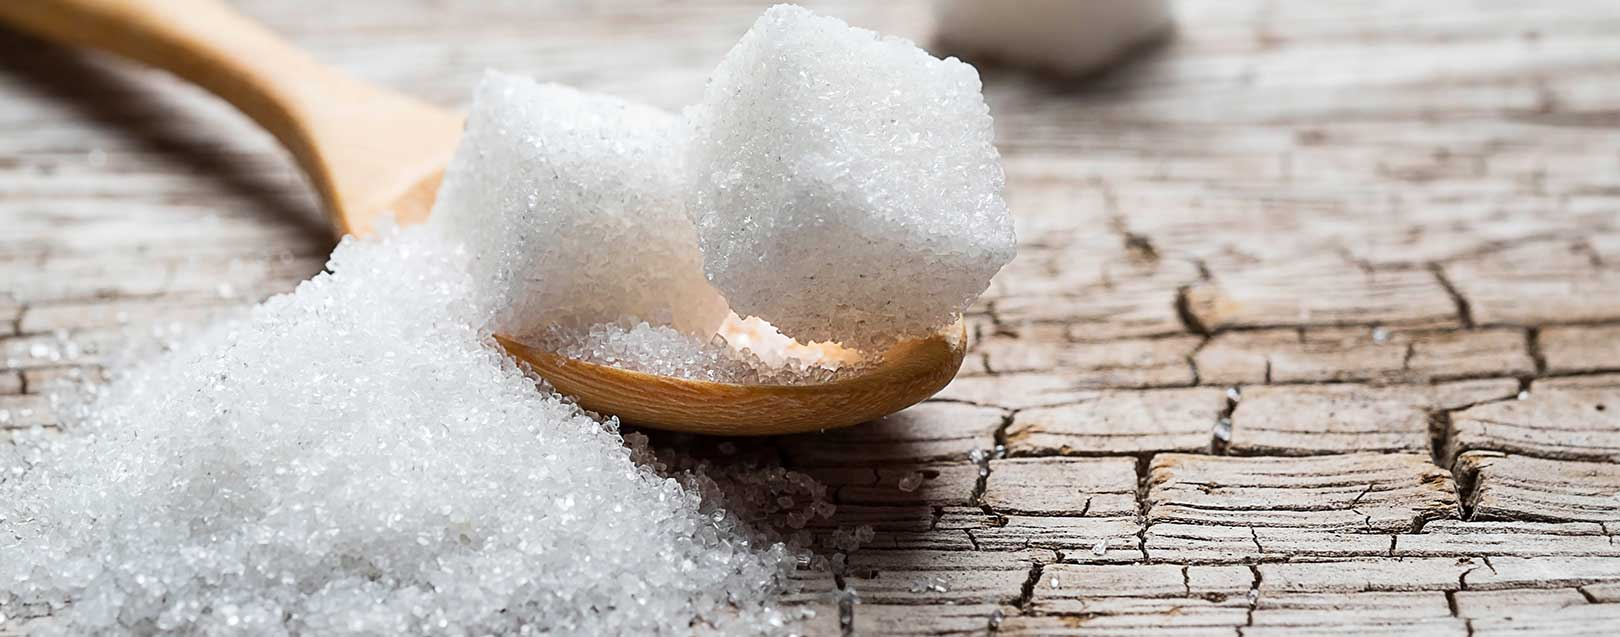 Sugar import permit unlikely to ease prices: ICRA